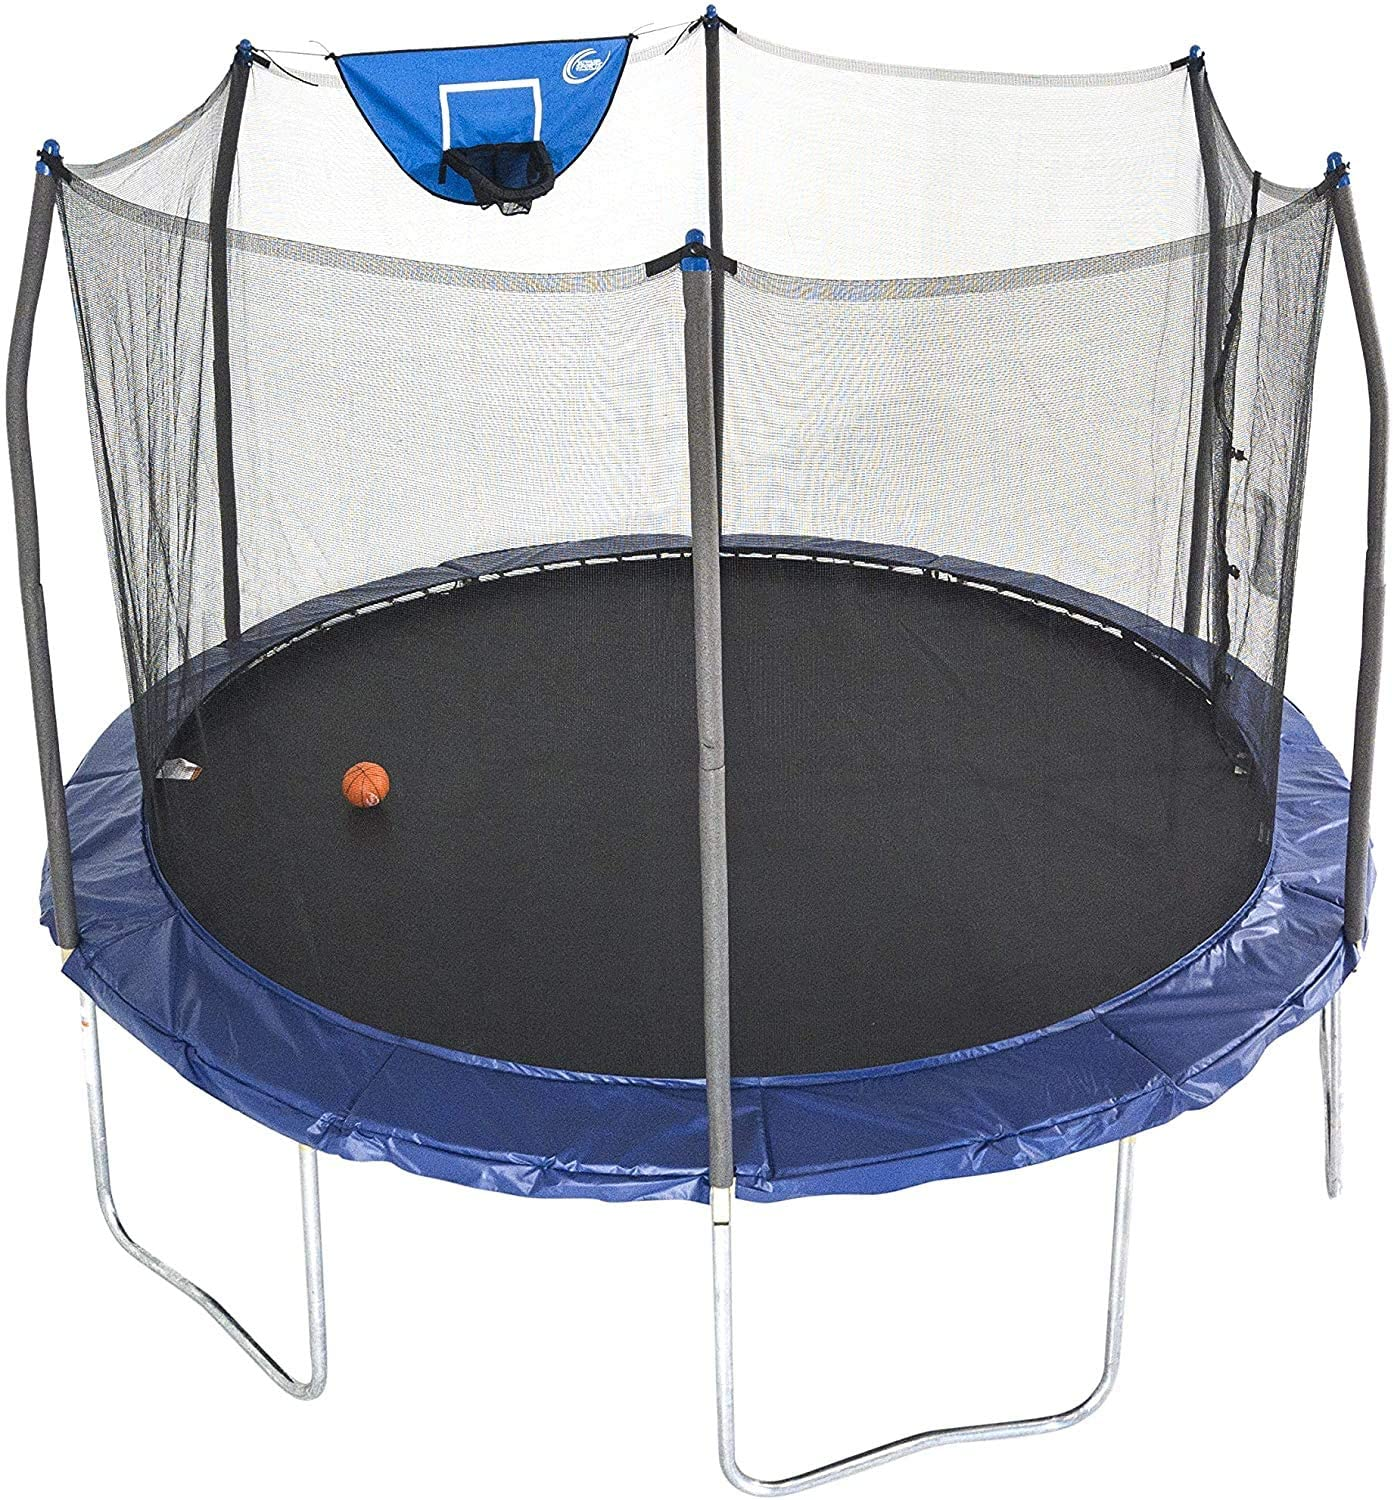 Trampoline is the best way to get fun and health both. Both kids and adults can use trampo...